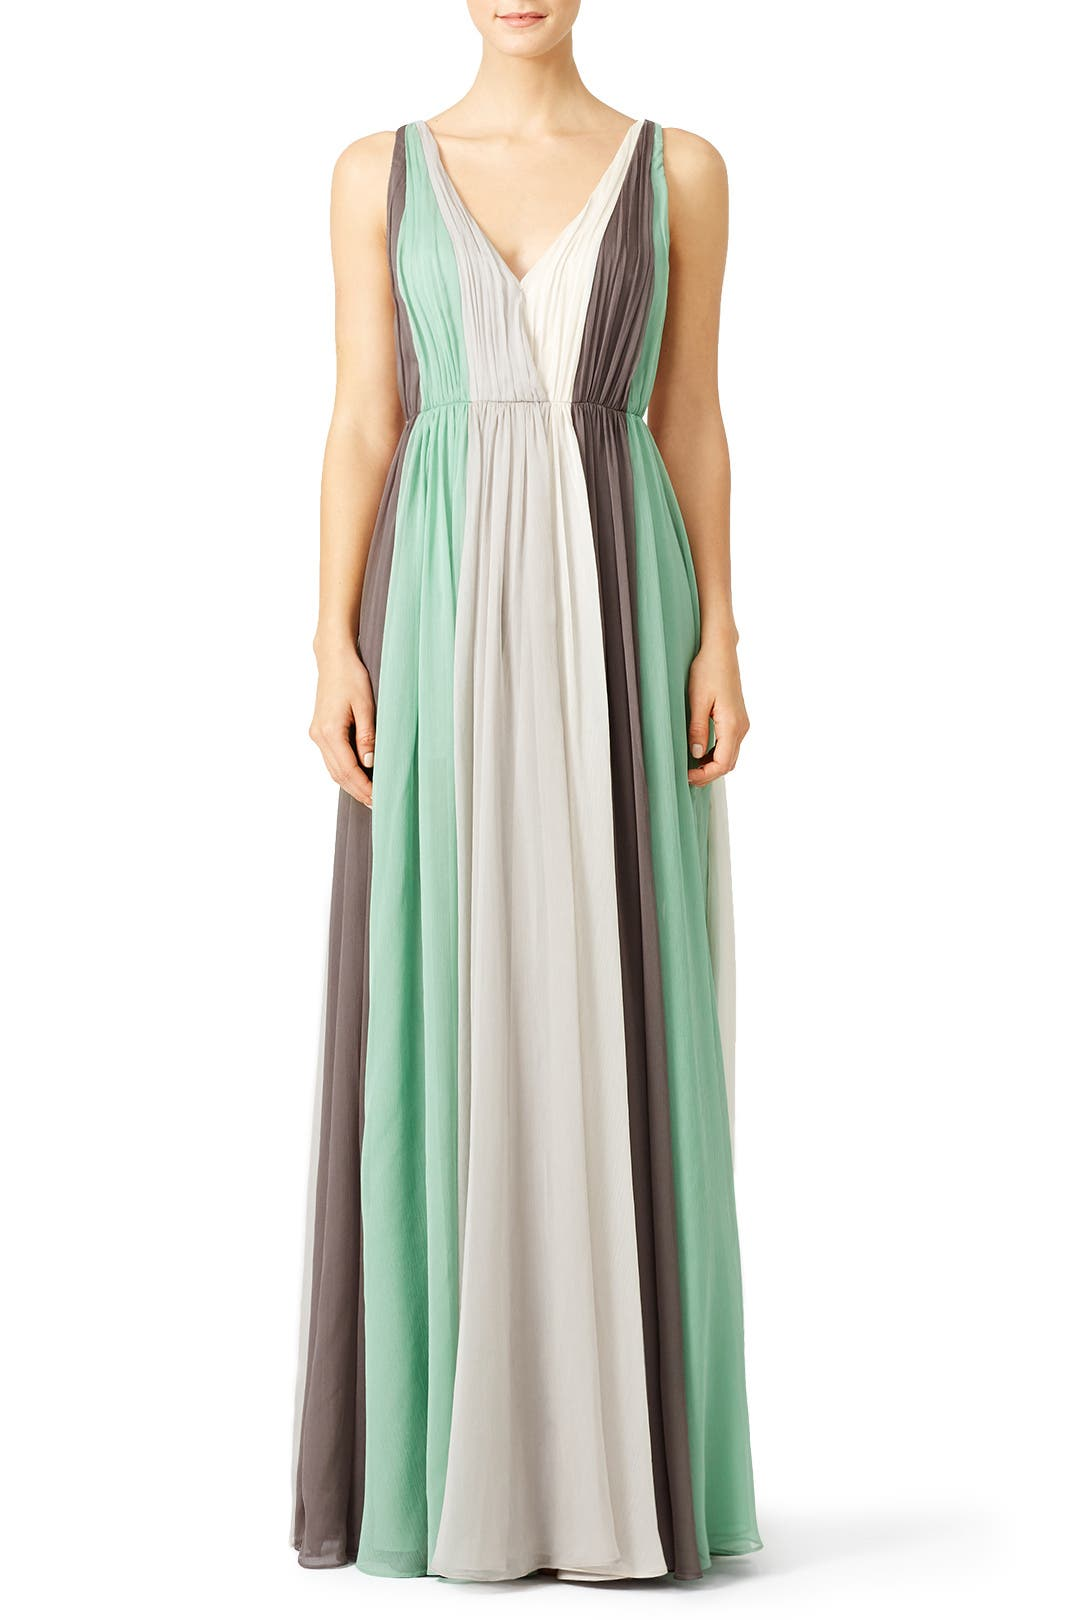 0e279d46344d Dresses - Halston Heritage Great selection and prices for Wedding ...